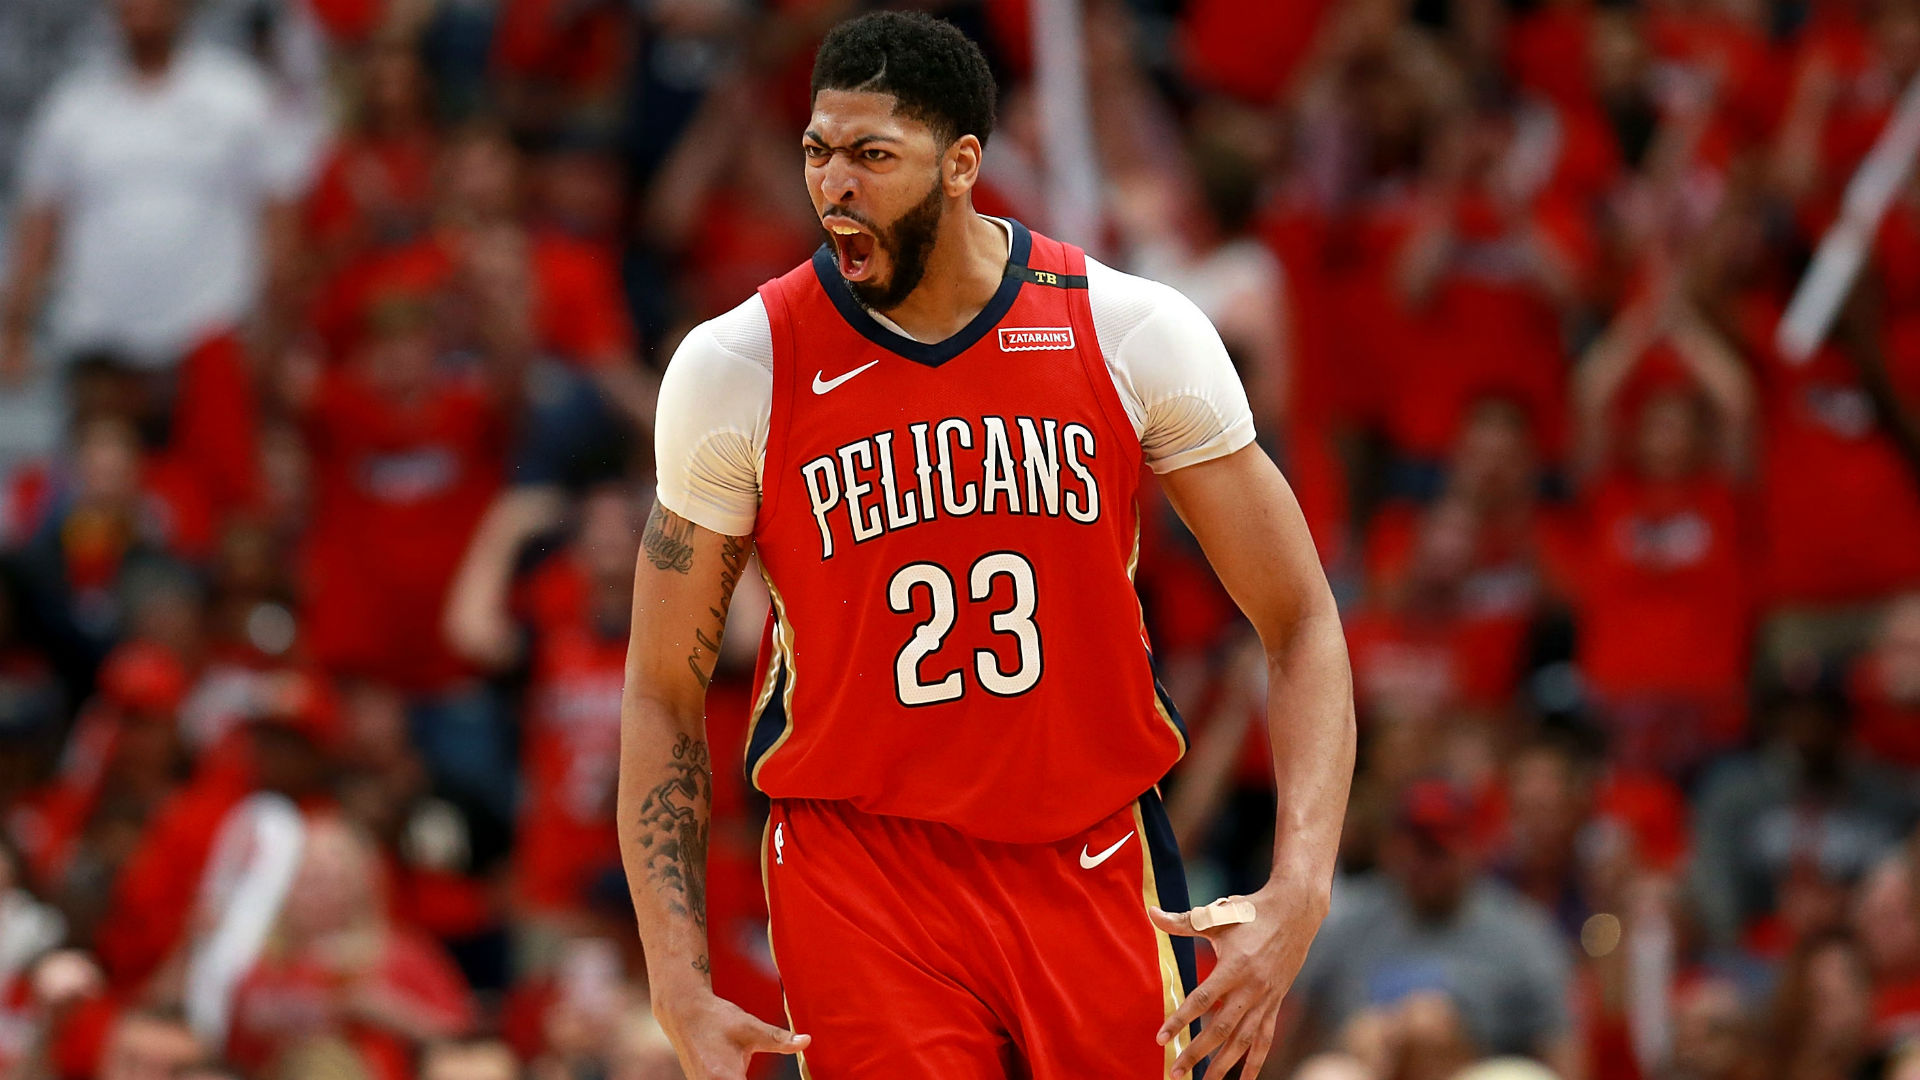 Pelicans star Davis injury to see hand specialist